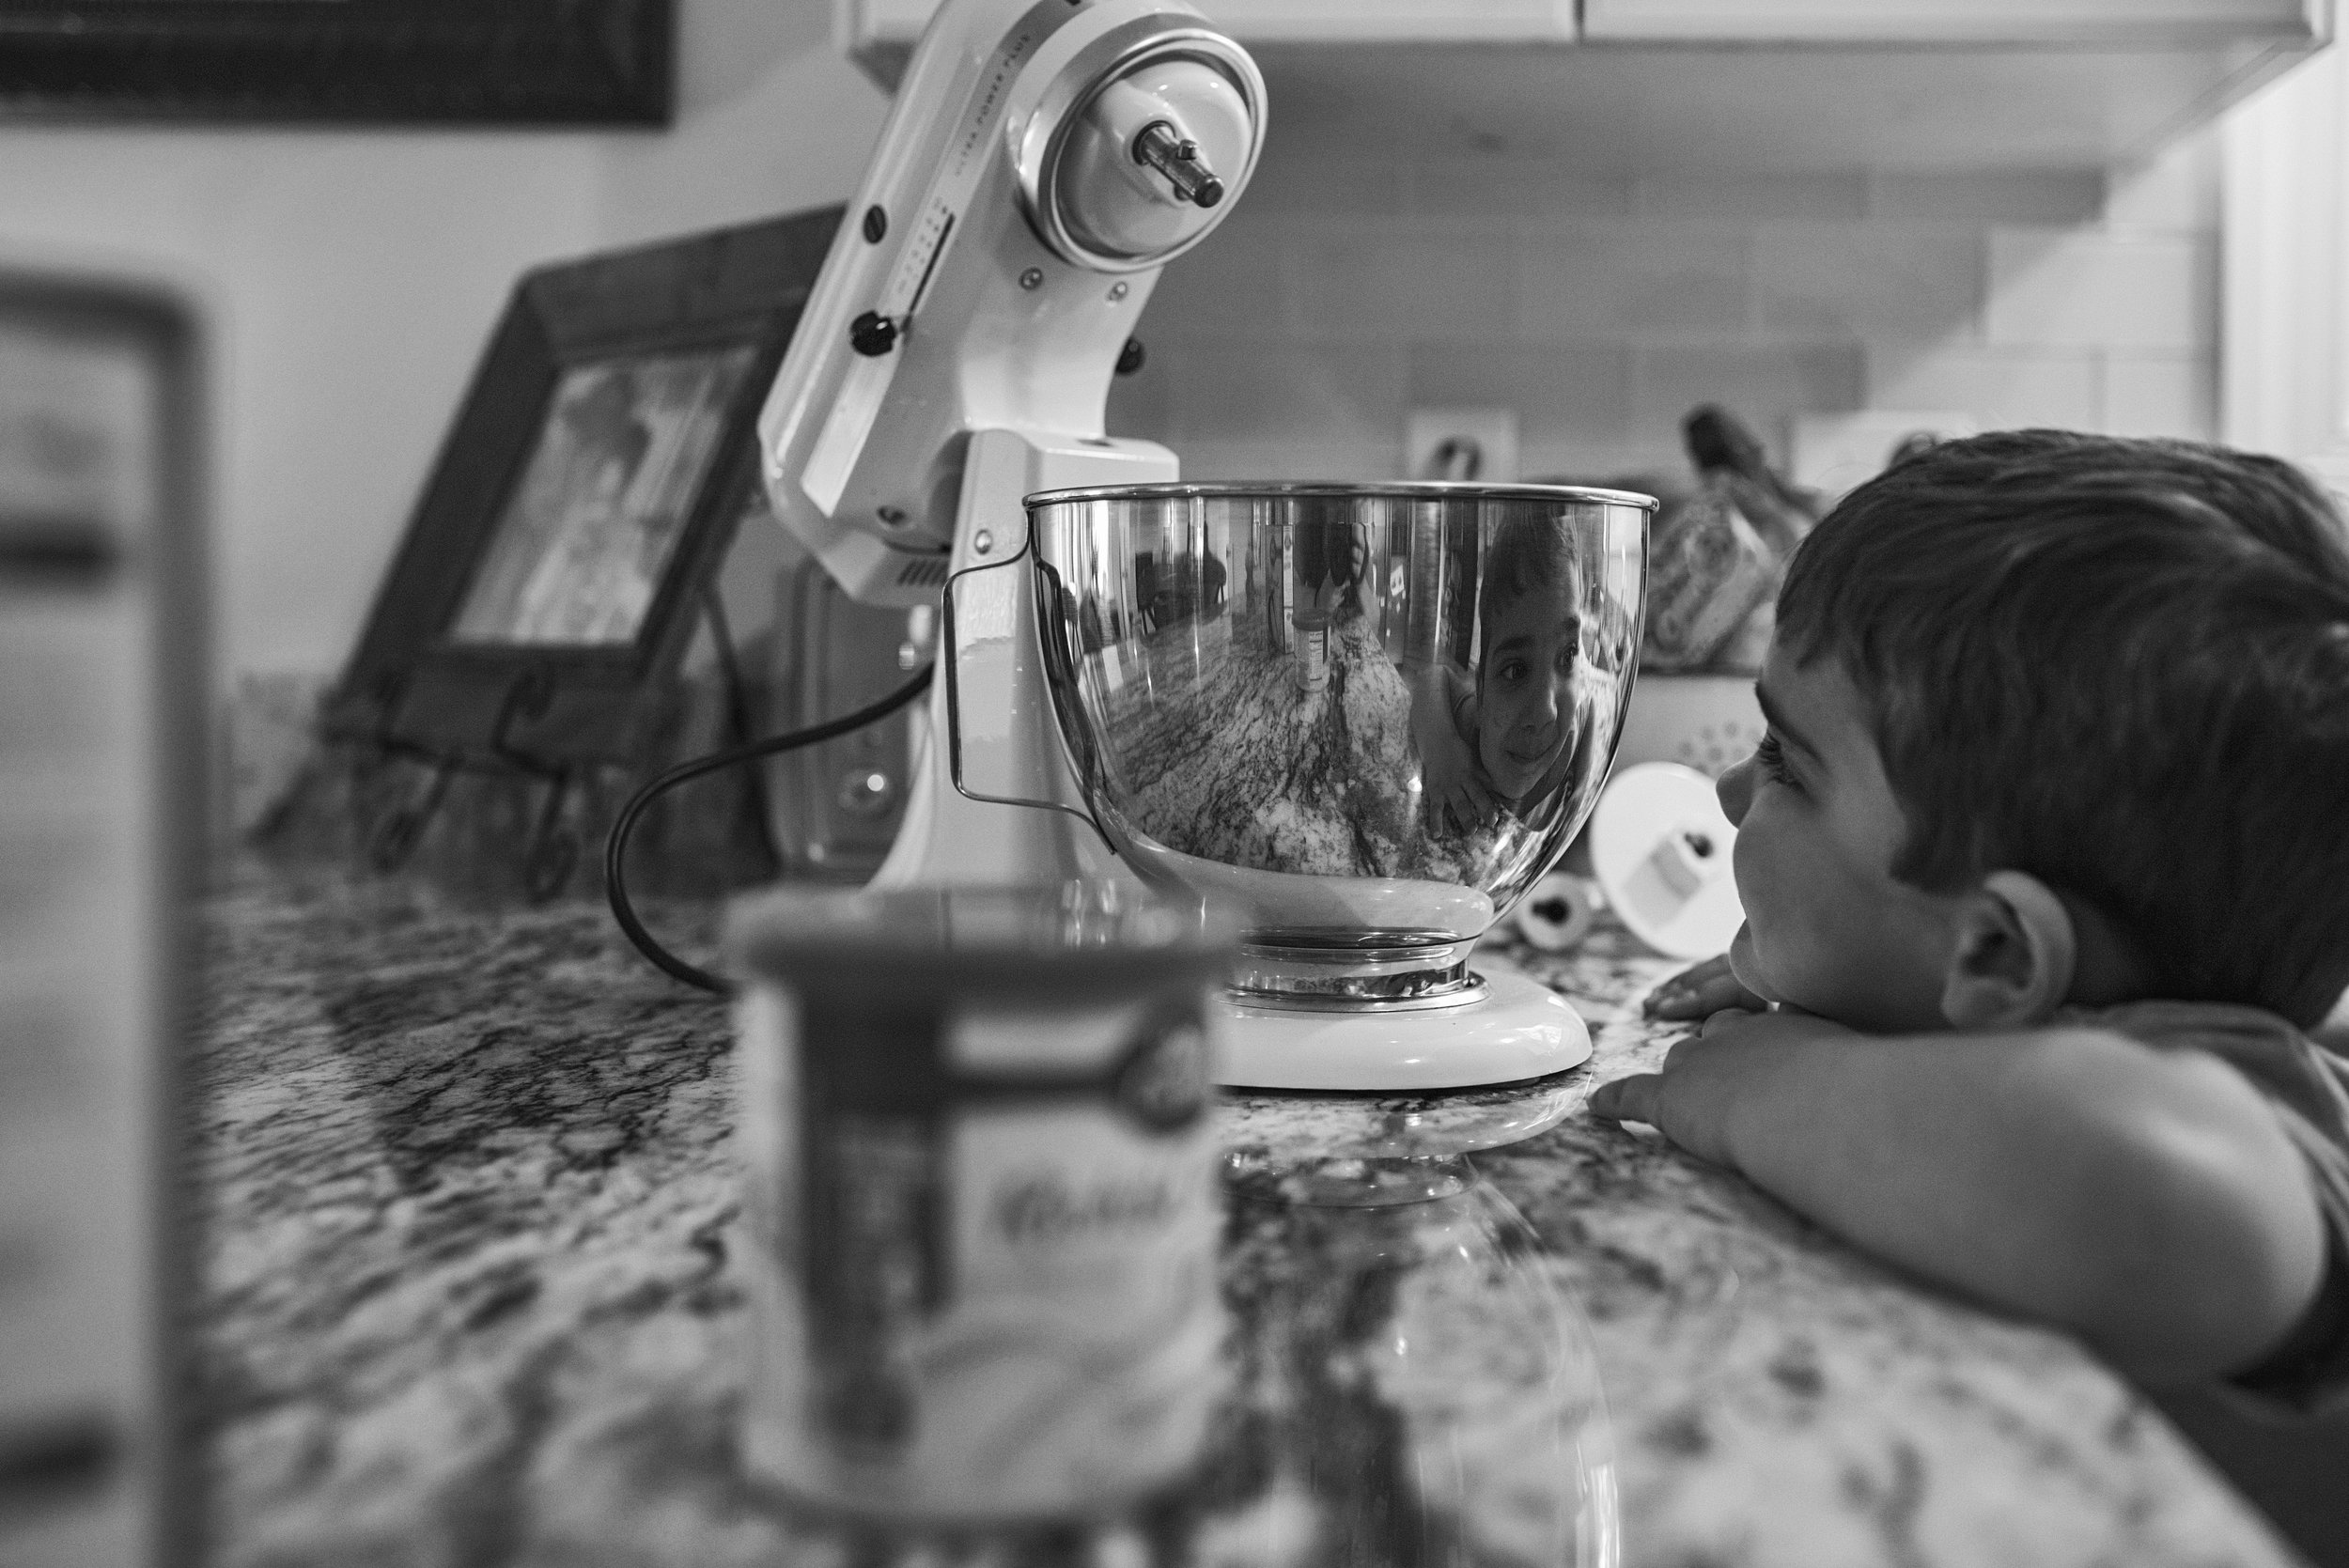 Mechanicsville family decided to bake cupcakes for a local fire department during their family session and the little boy enjoyed watching he reflection in the mixer.